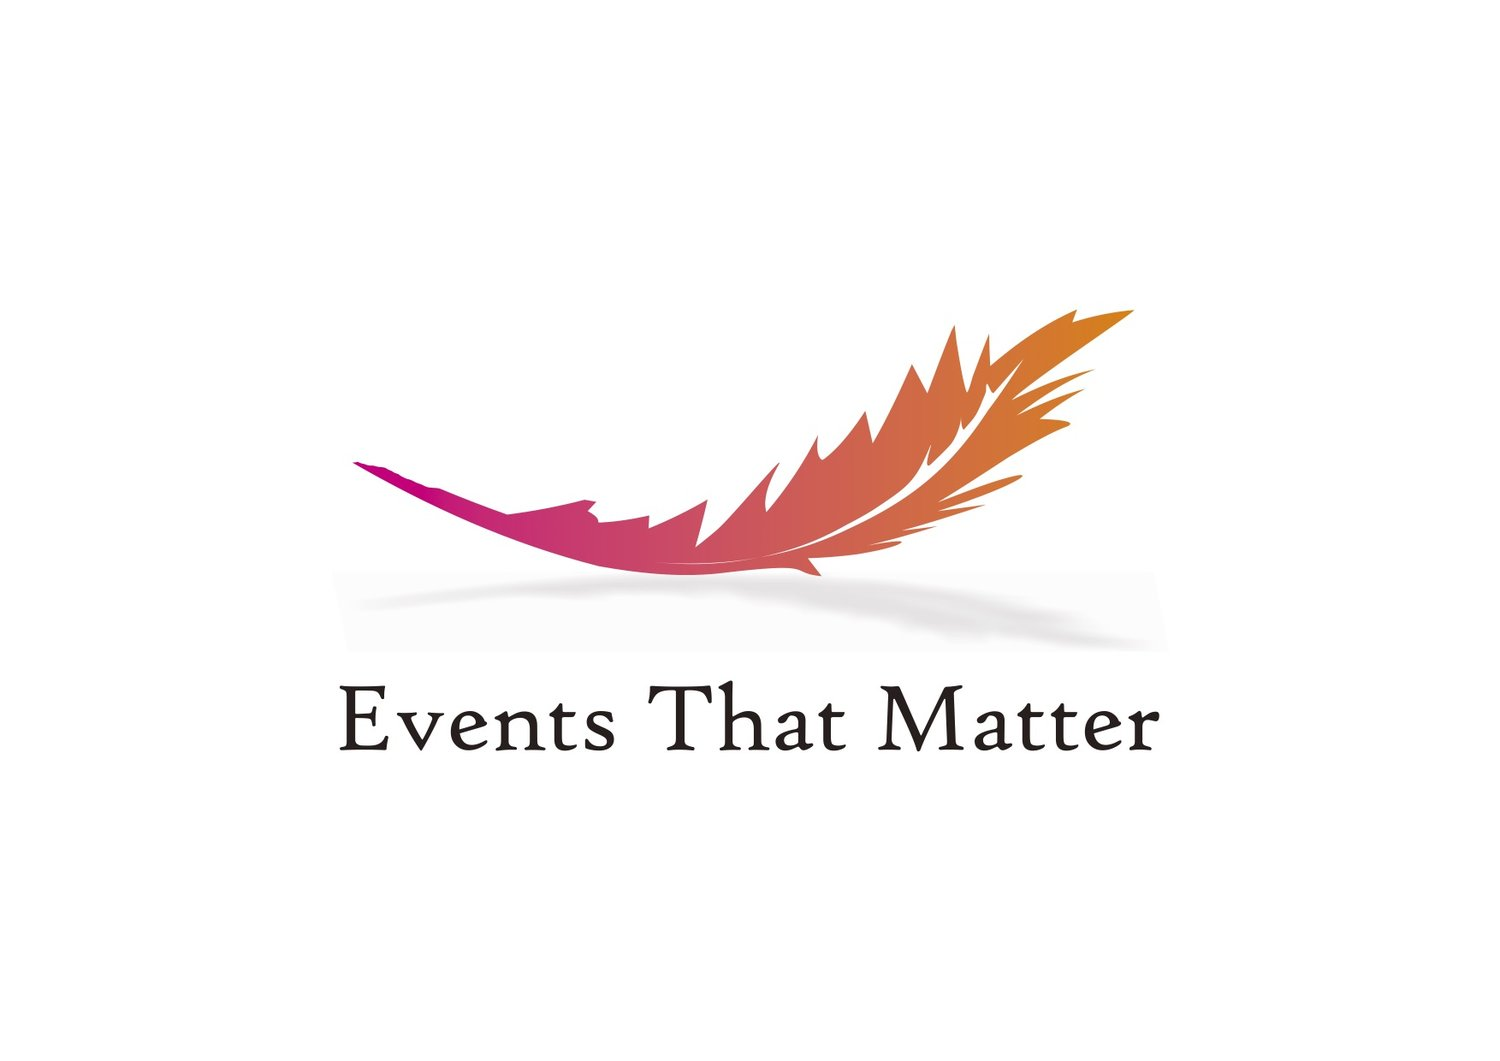 Events That Matter